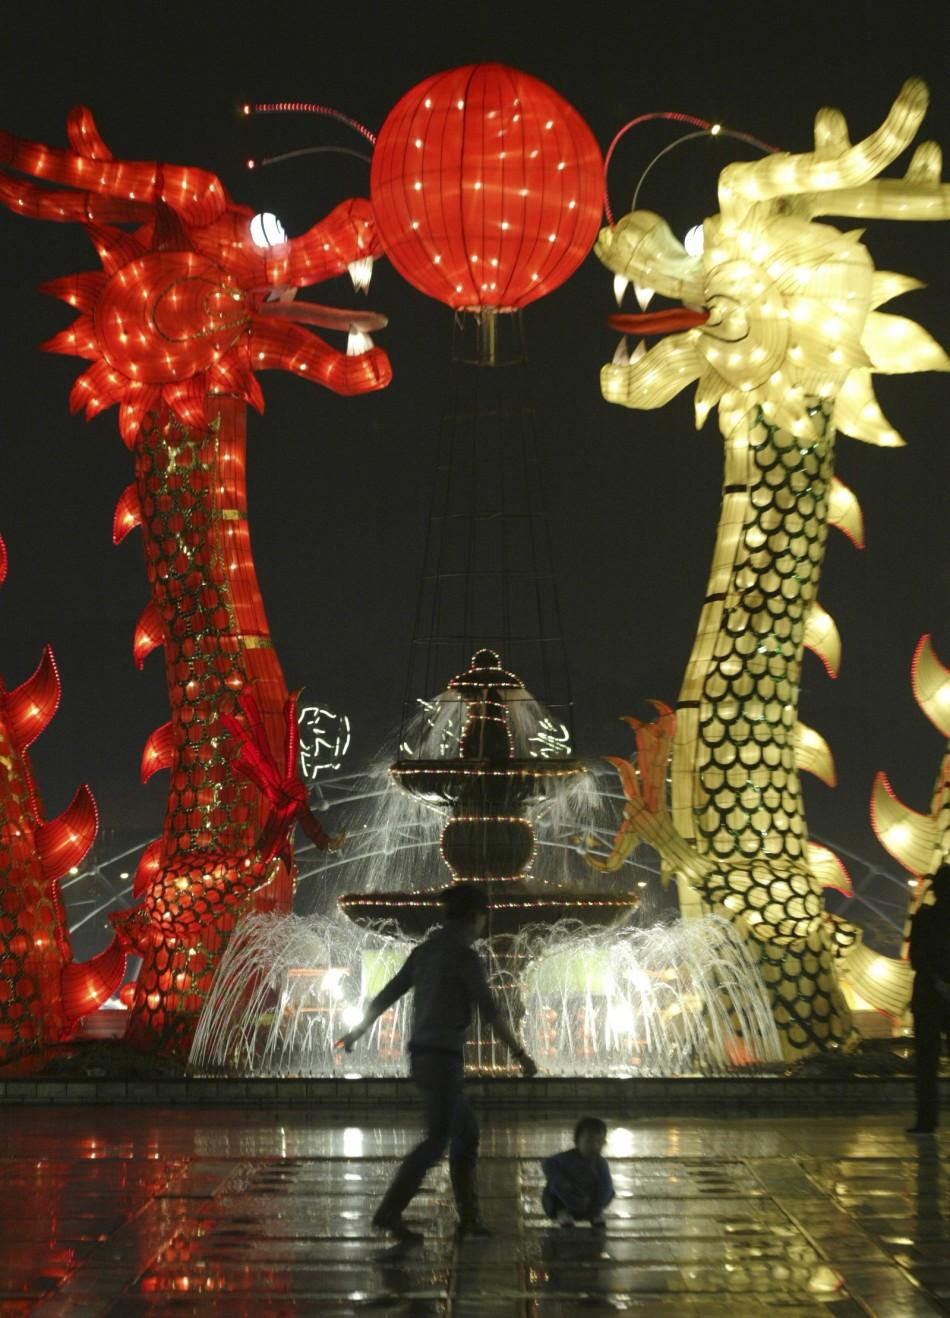 A dragon decoration is displayed at a park to celebrate Chinese New Year in Guangzhou